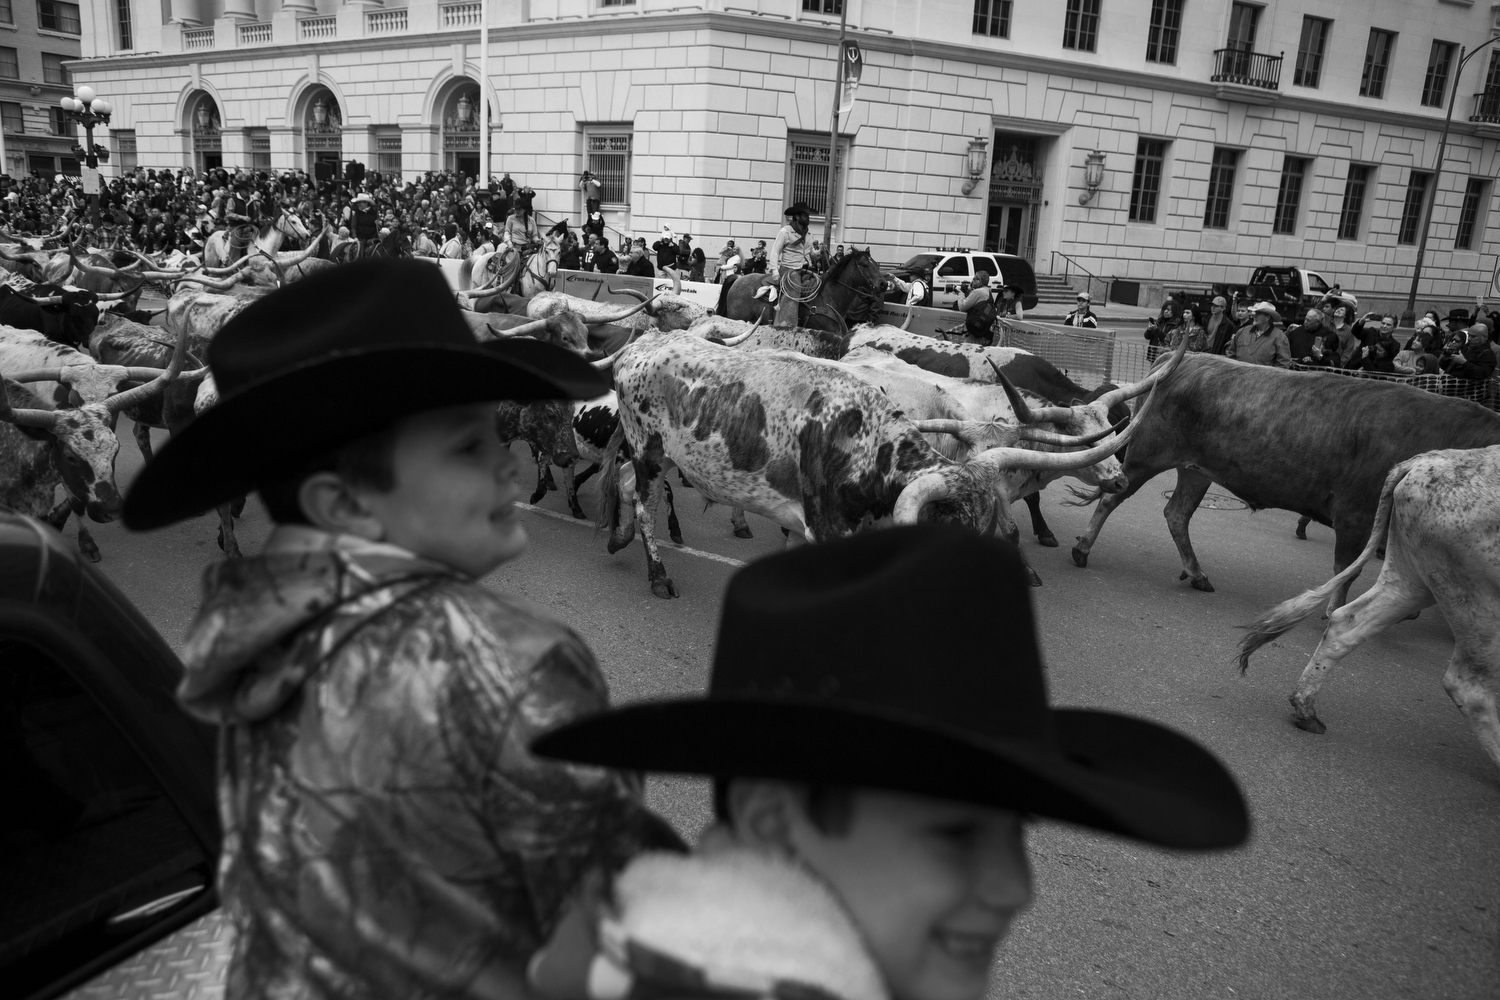 A herd of Longhorns walks down Houston St. during San Antonio Stock Show's annual Western Heritage Parade and Cattle Drive in downtown San Antonio, TX on Saturday, February 7, 2015.